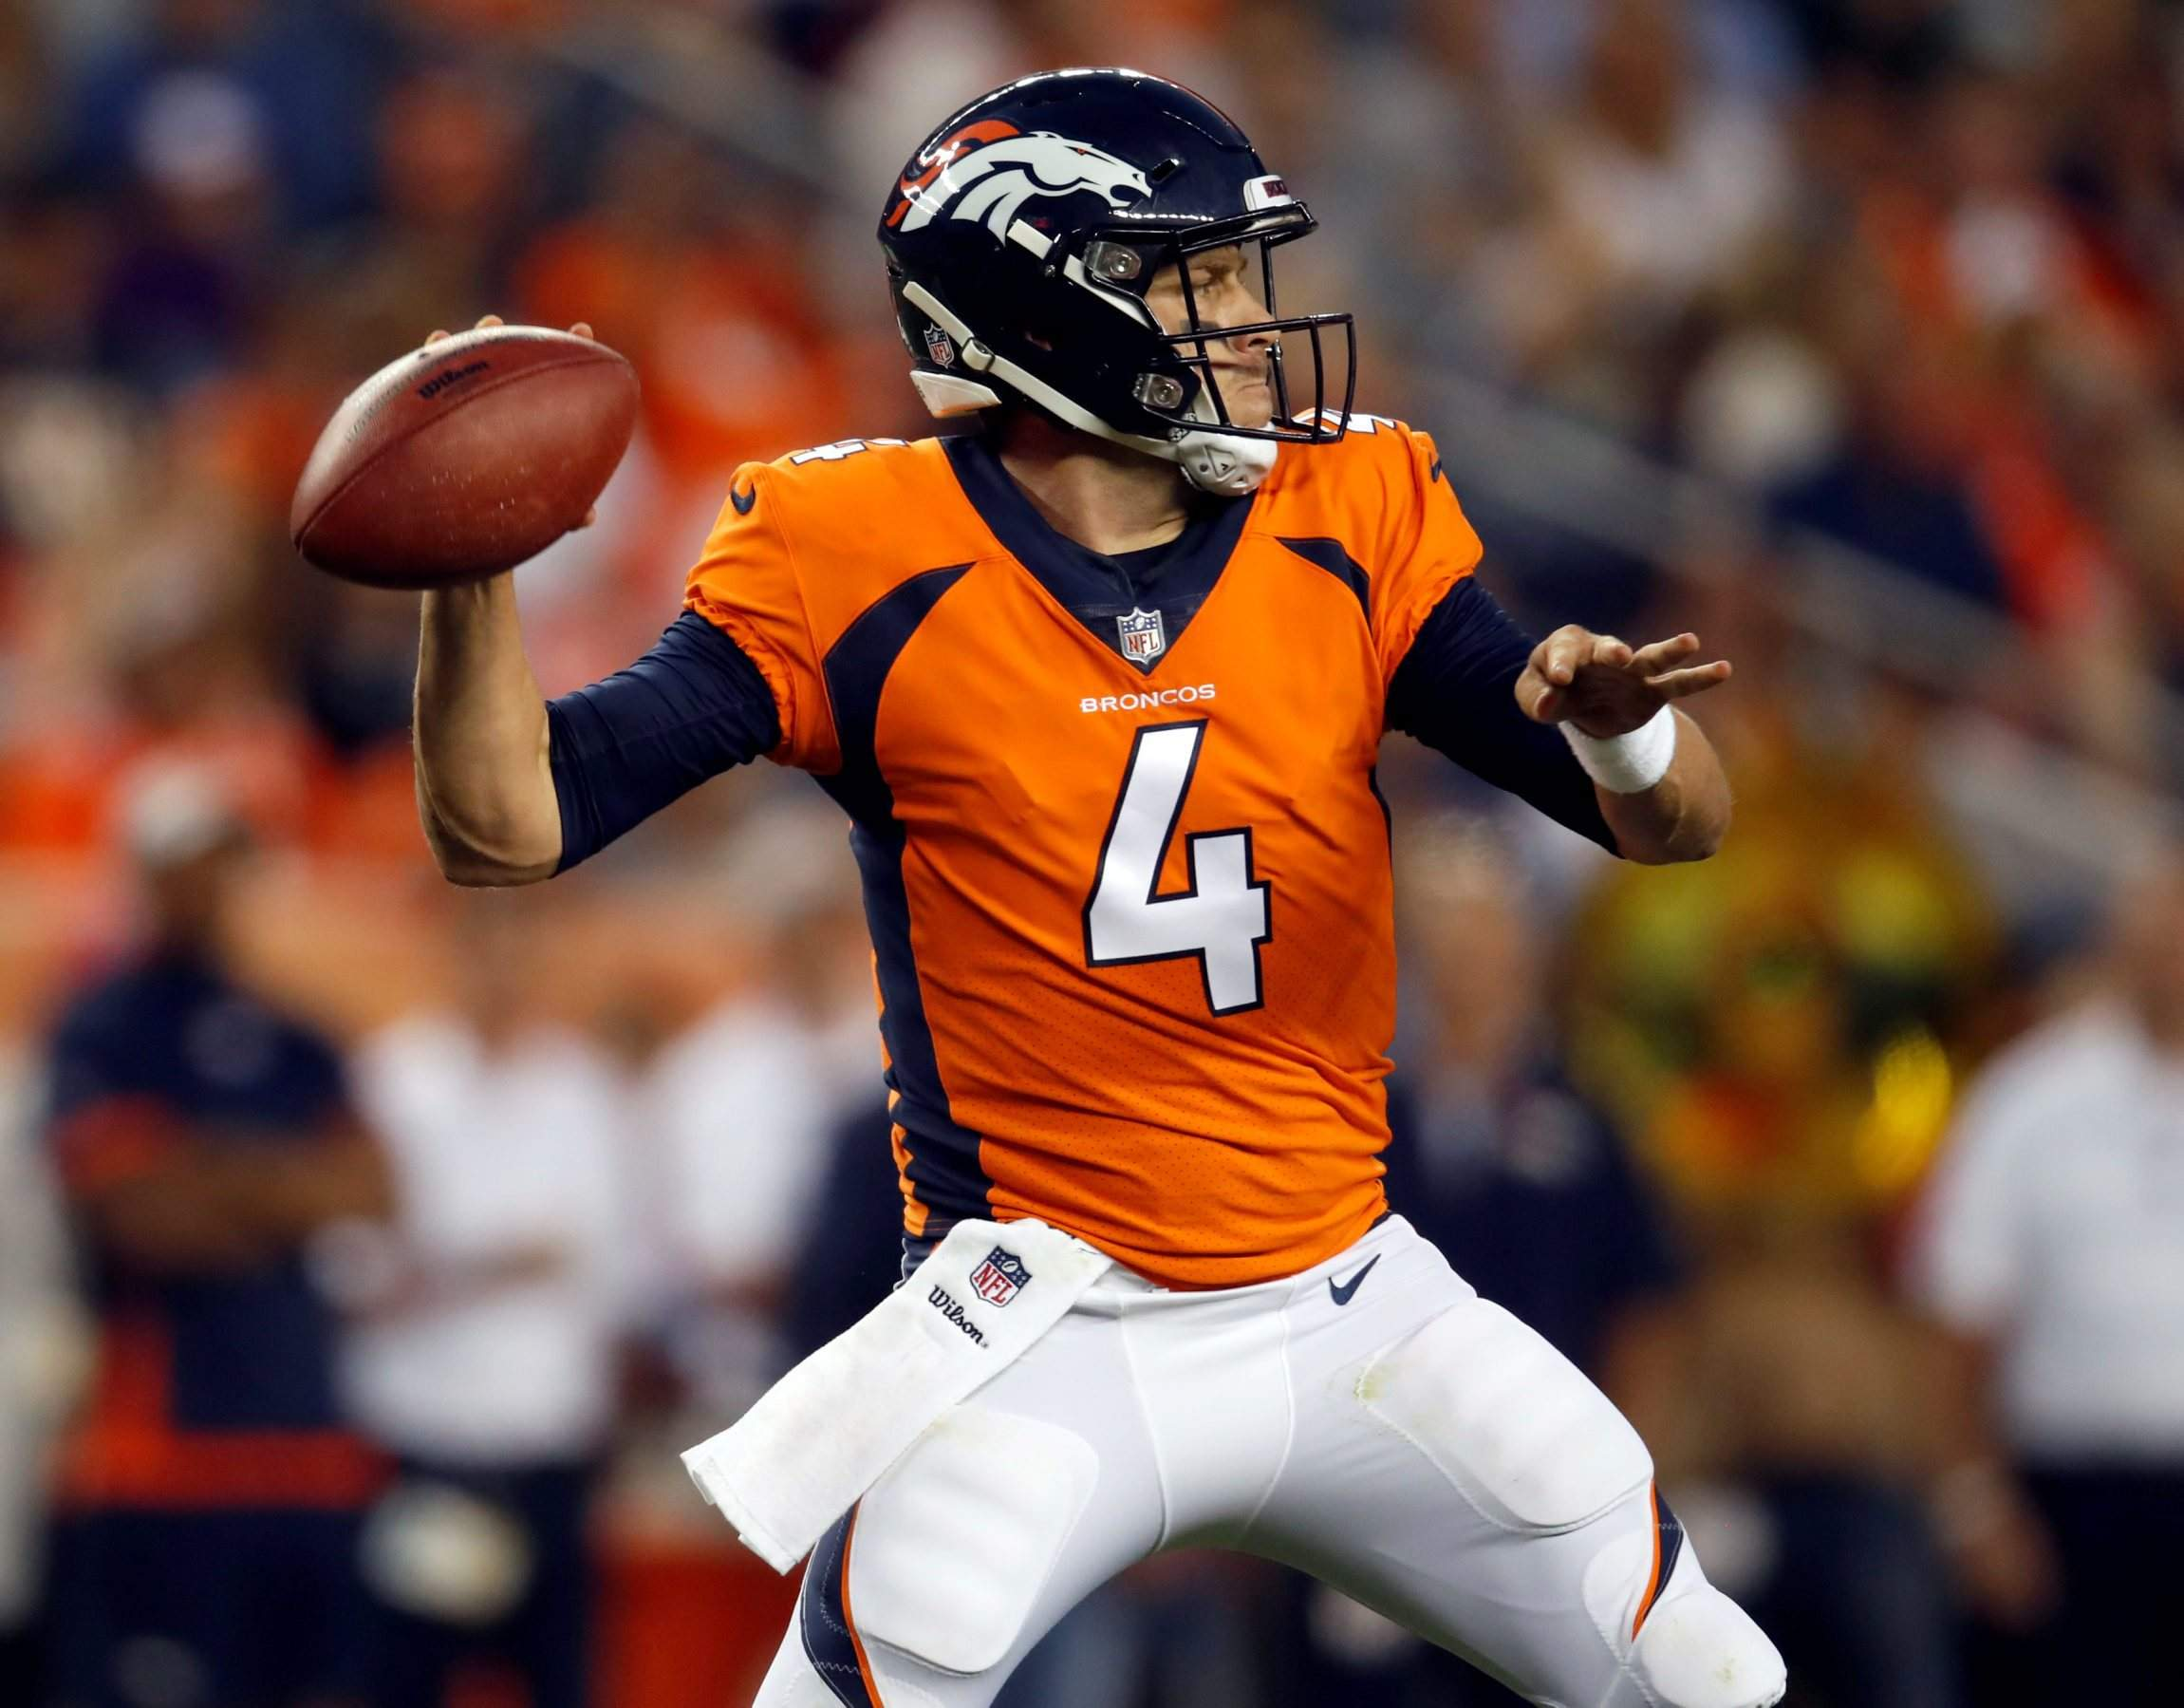 Denver Broncos Quarterback Case Keenum  Throws Against The Chicago Bears During The First Half Saturday In Denver